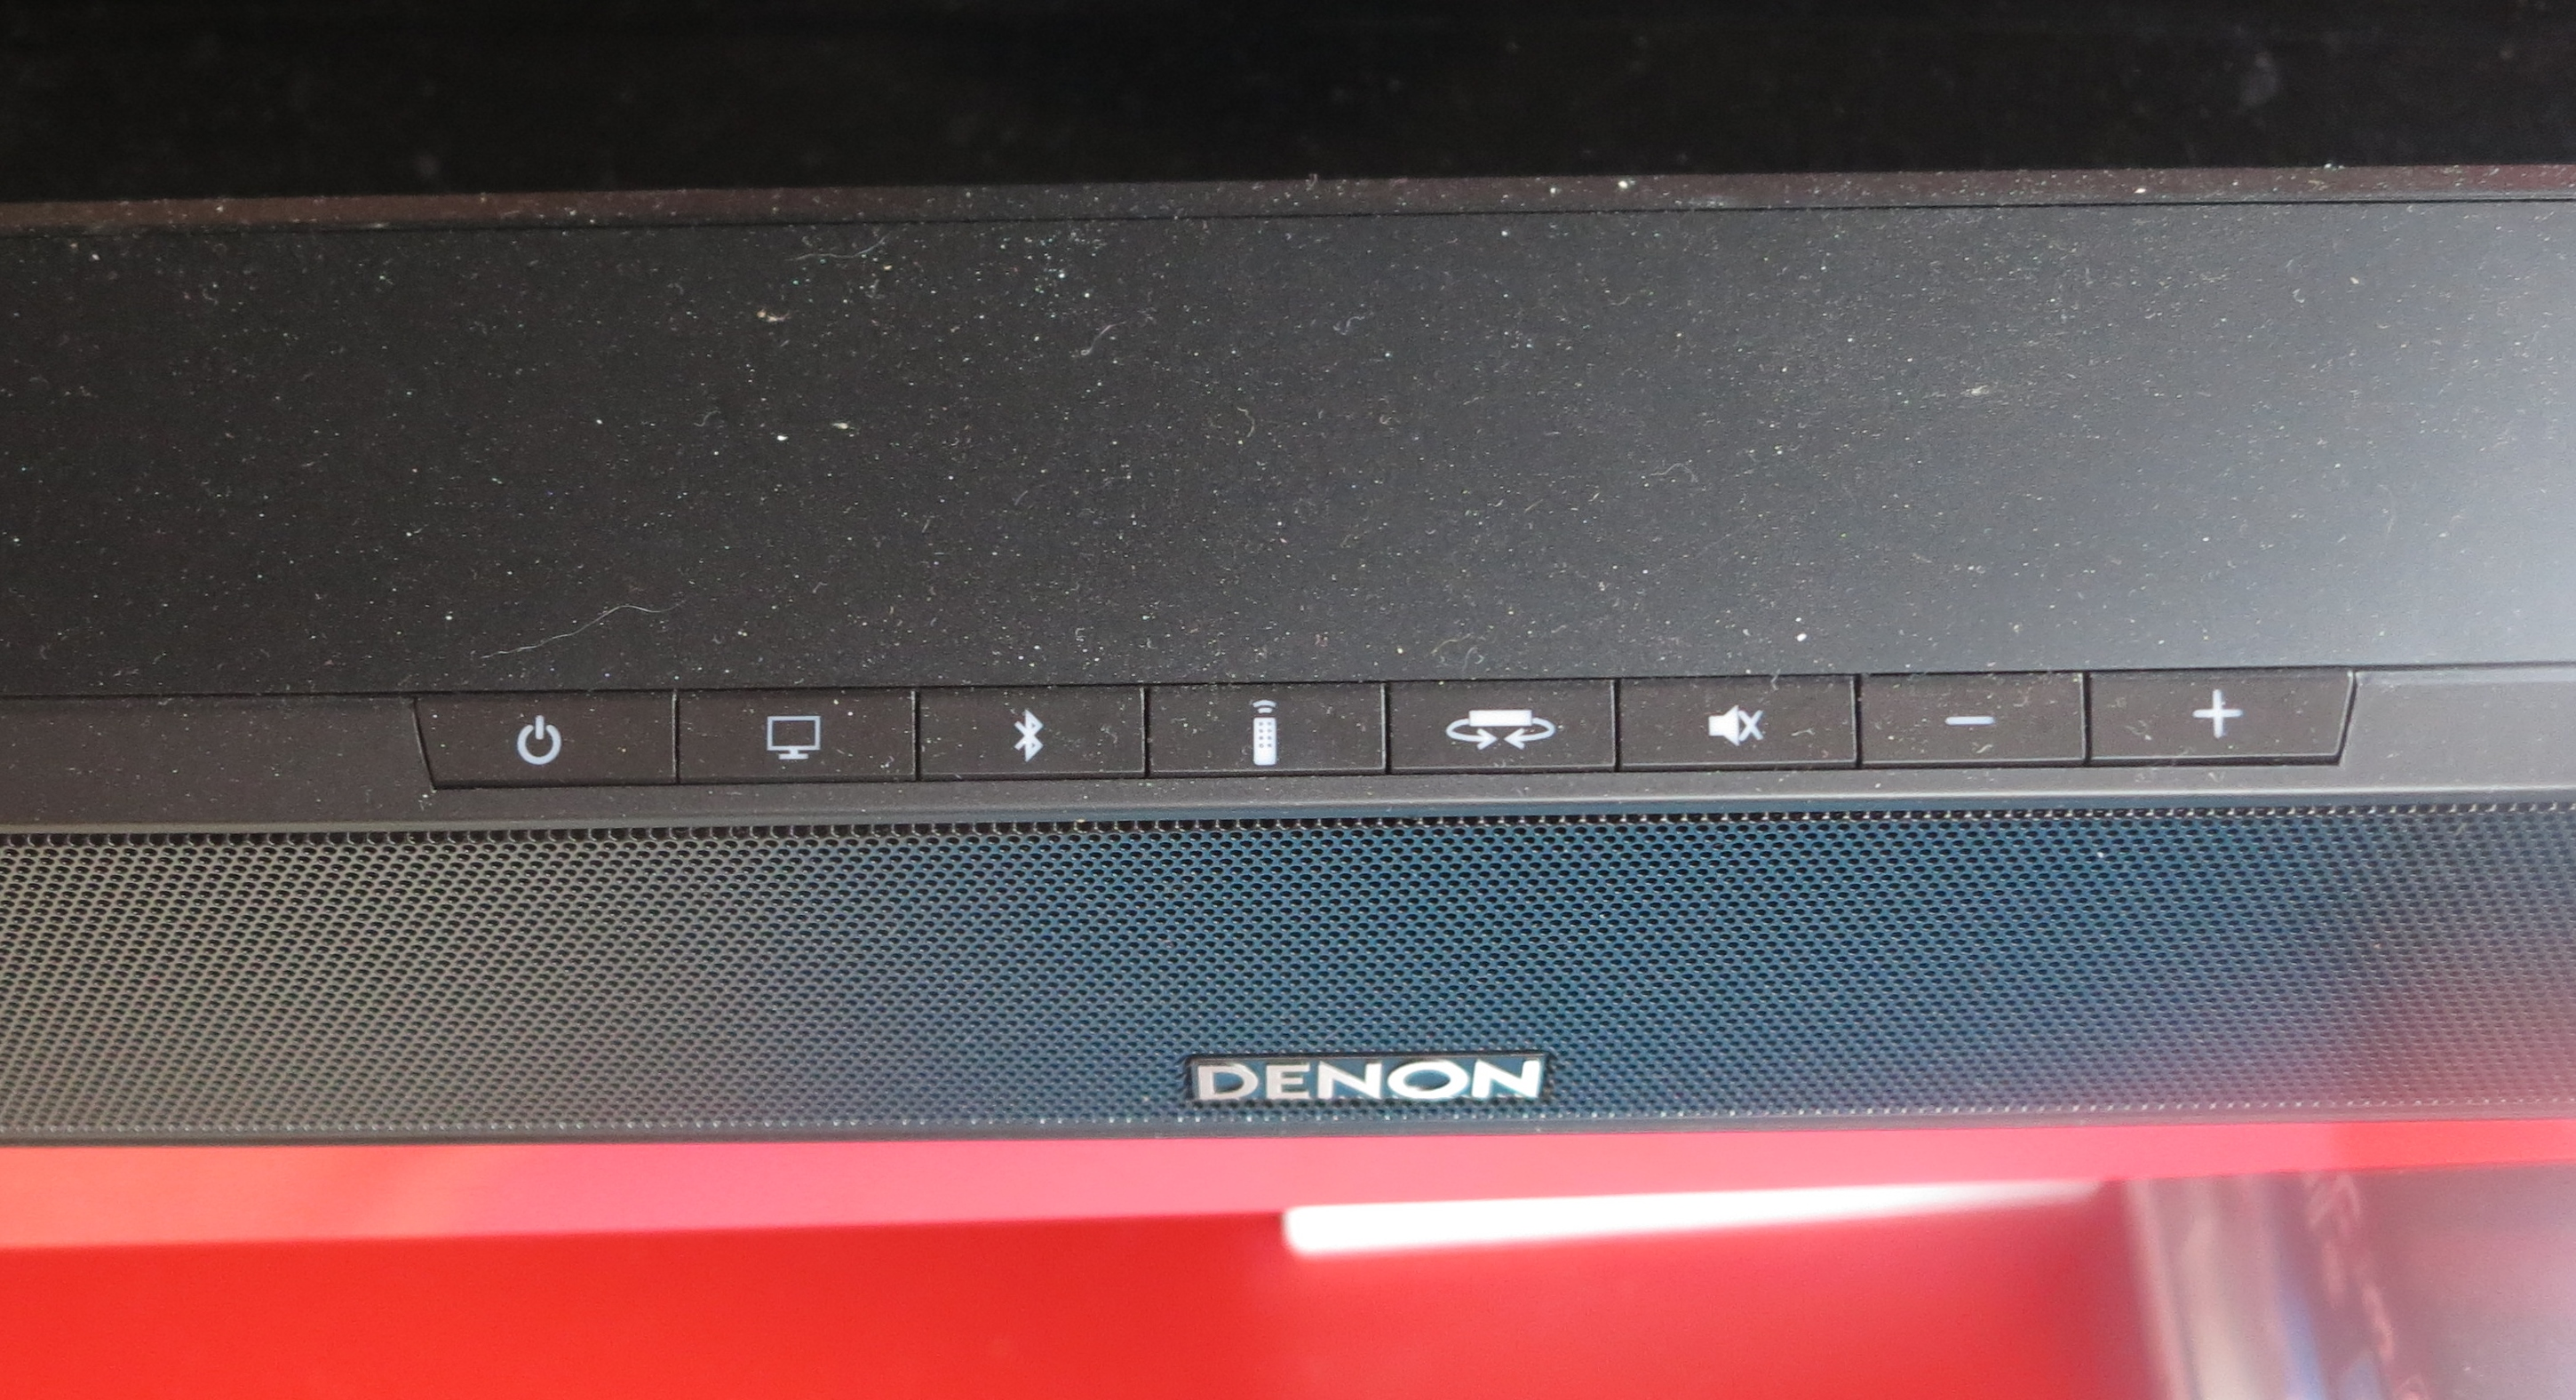 Denon DHT-S514 soundbar controls